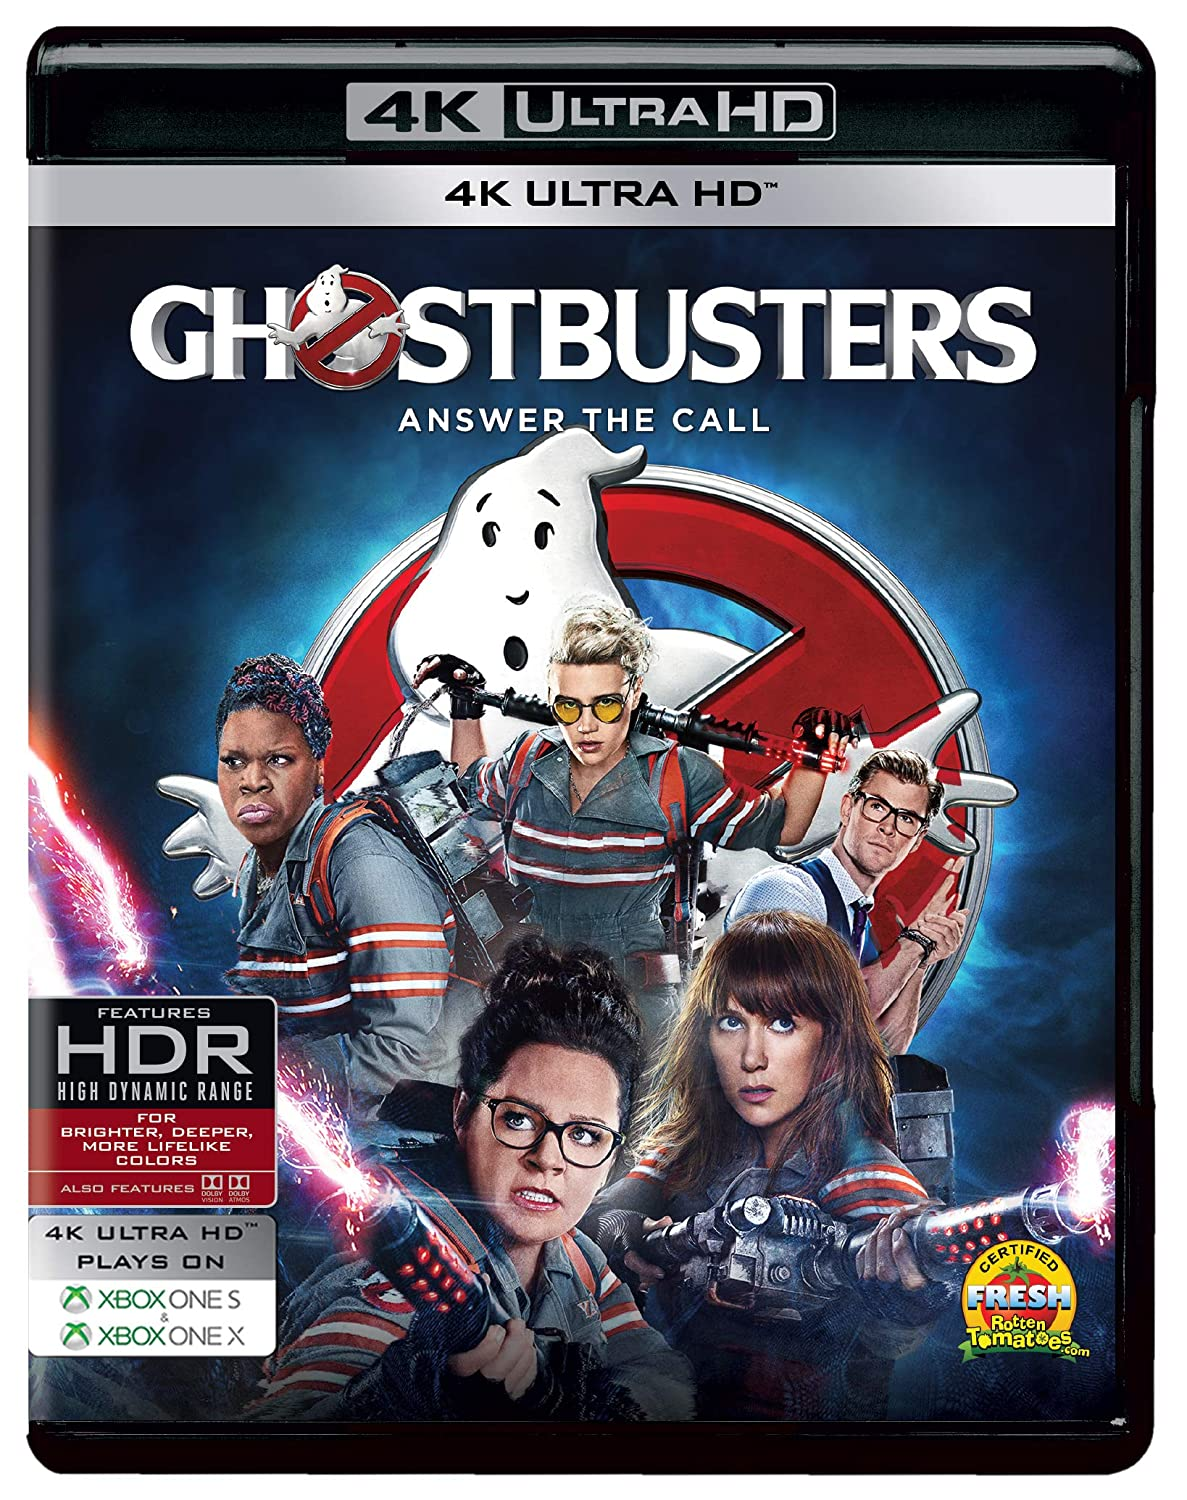 Ghostbusters Pictures 1080p X 1080p: Ghostbusters (2016) 720p + 1080p BluRay X264 ESub Dual